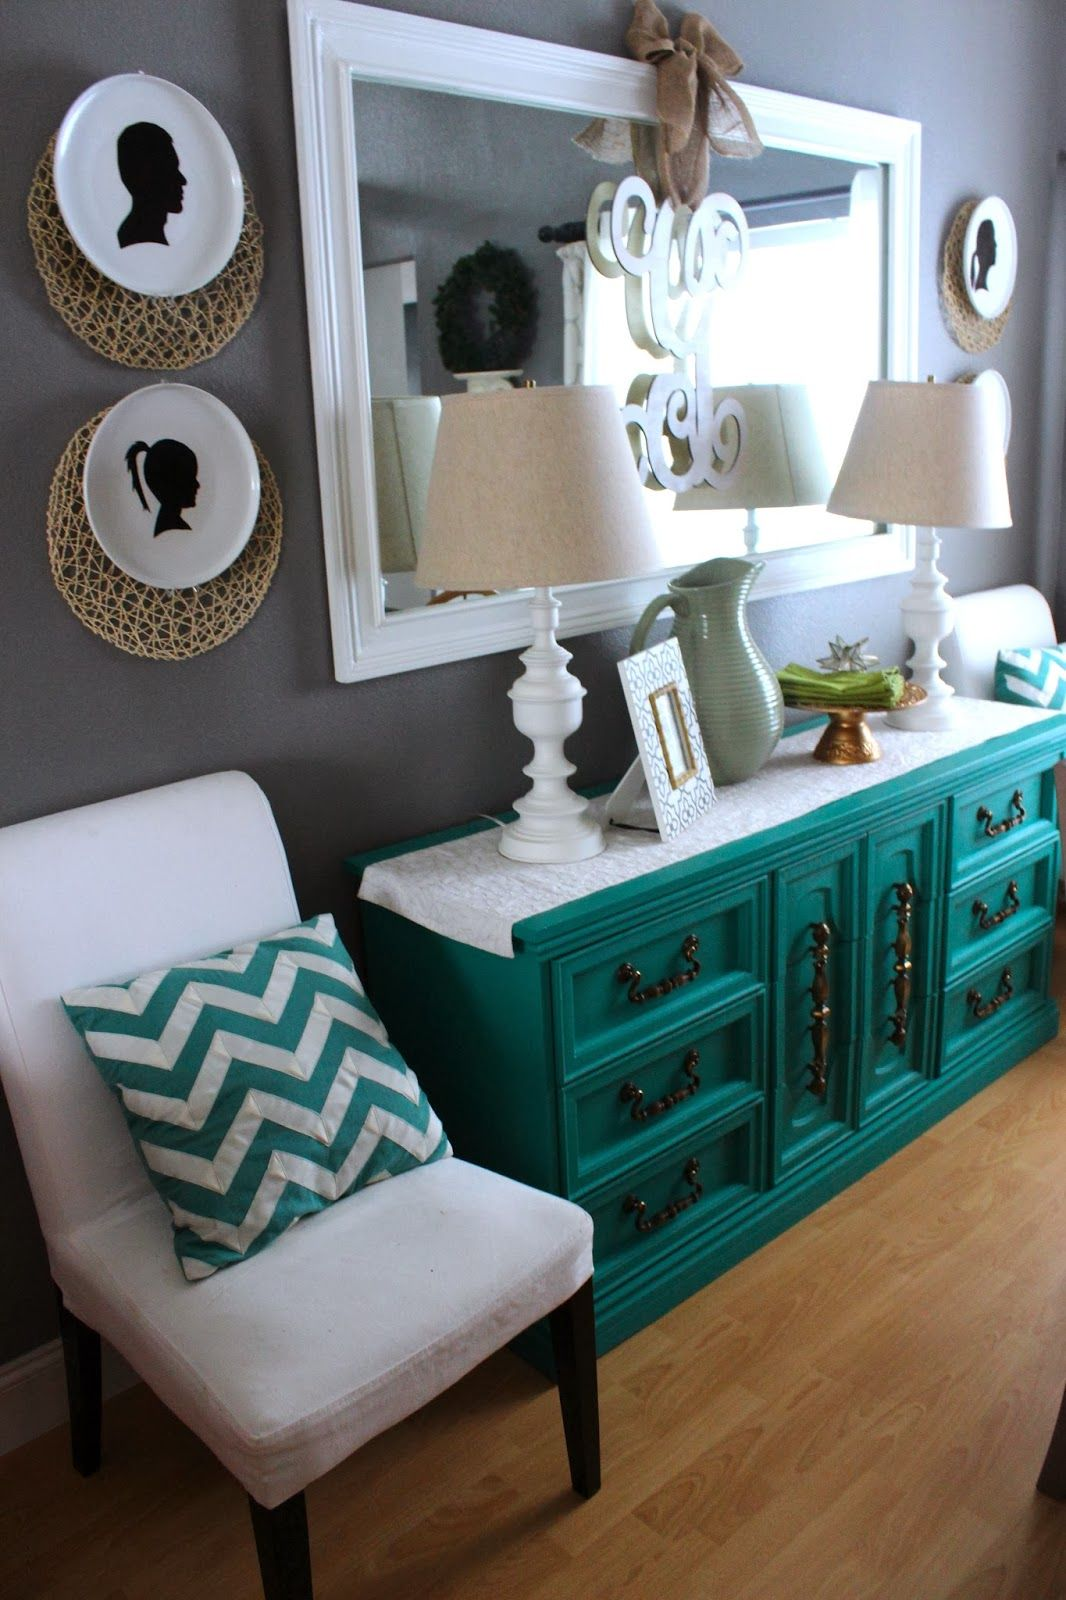 Cool chair paint designs - 10 Ways To Revive An Old Dresser Dresser Decorationsteal Decorationschalk Paint